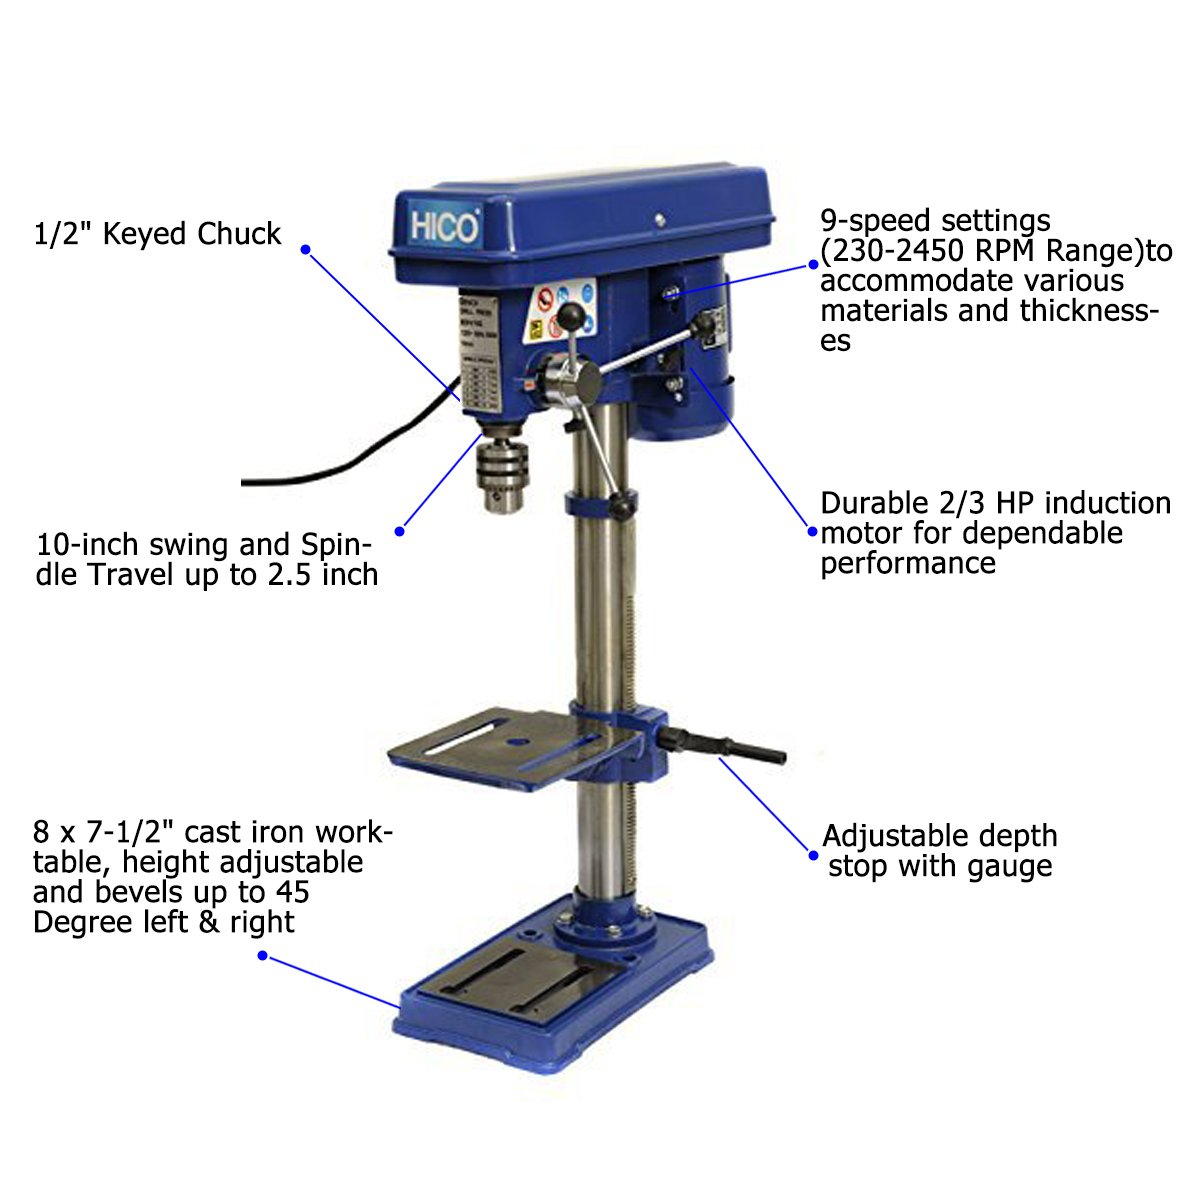 HICO Bench Top Drill Press - 10 Inch Height Adjustable, 9 Speed Motor, Cast Iron Table DP4116